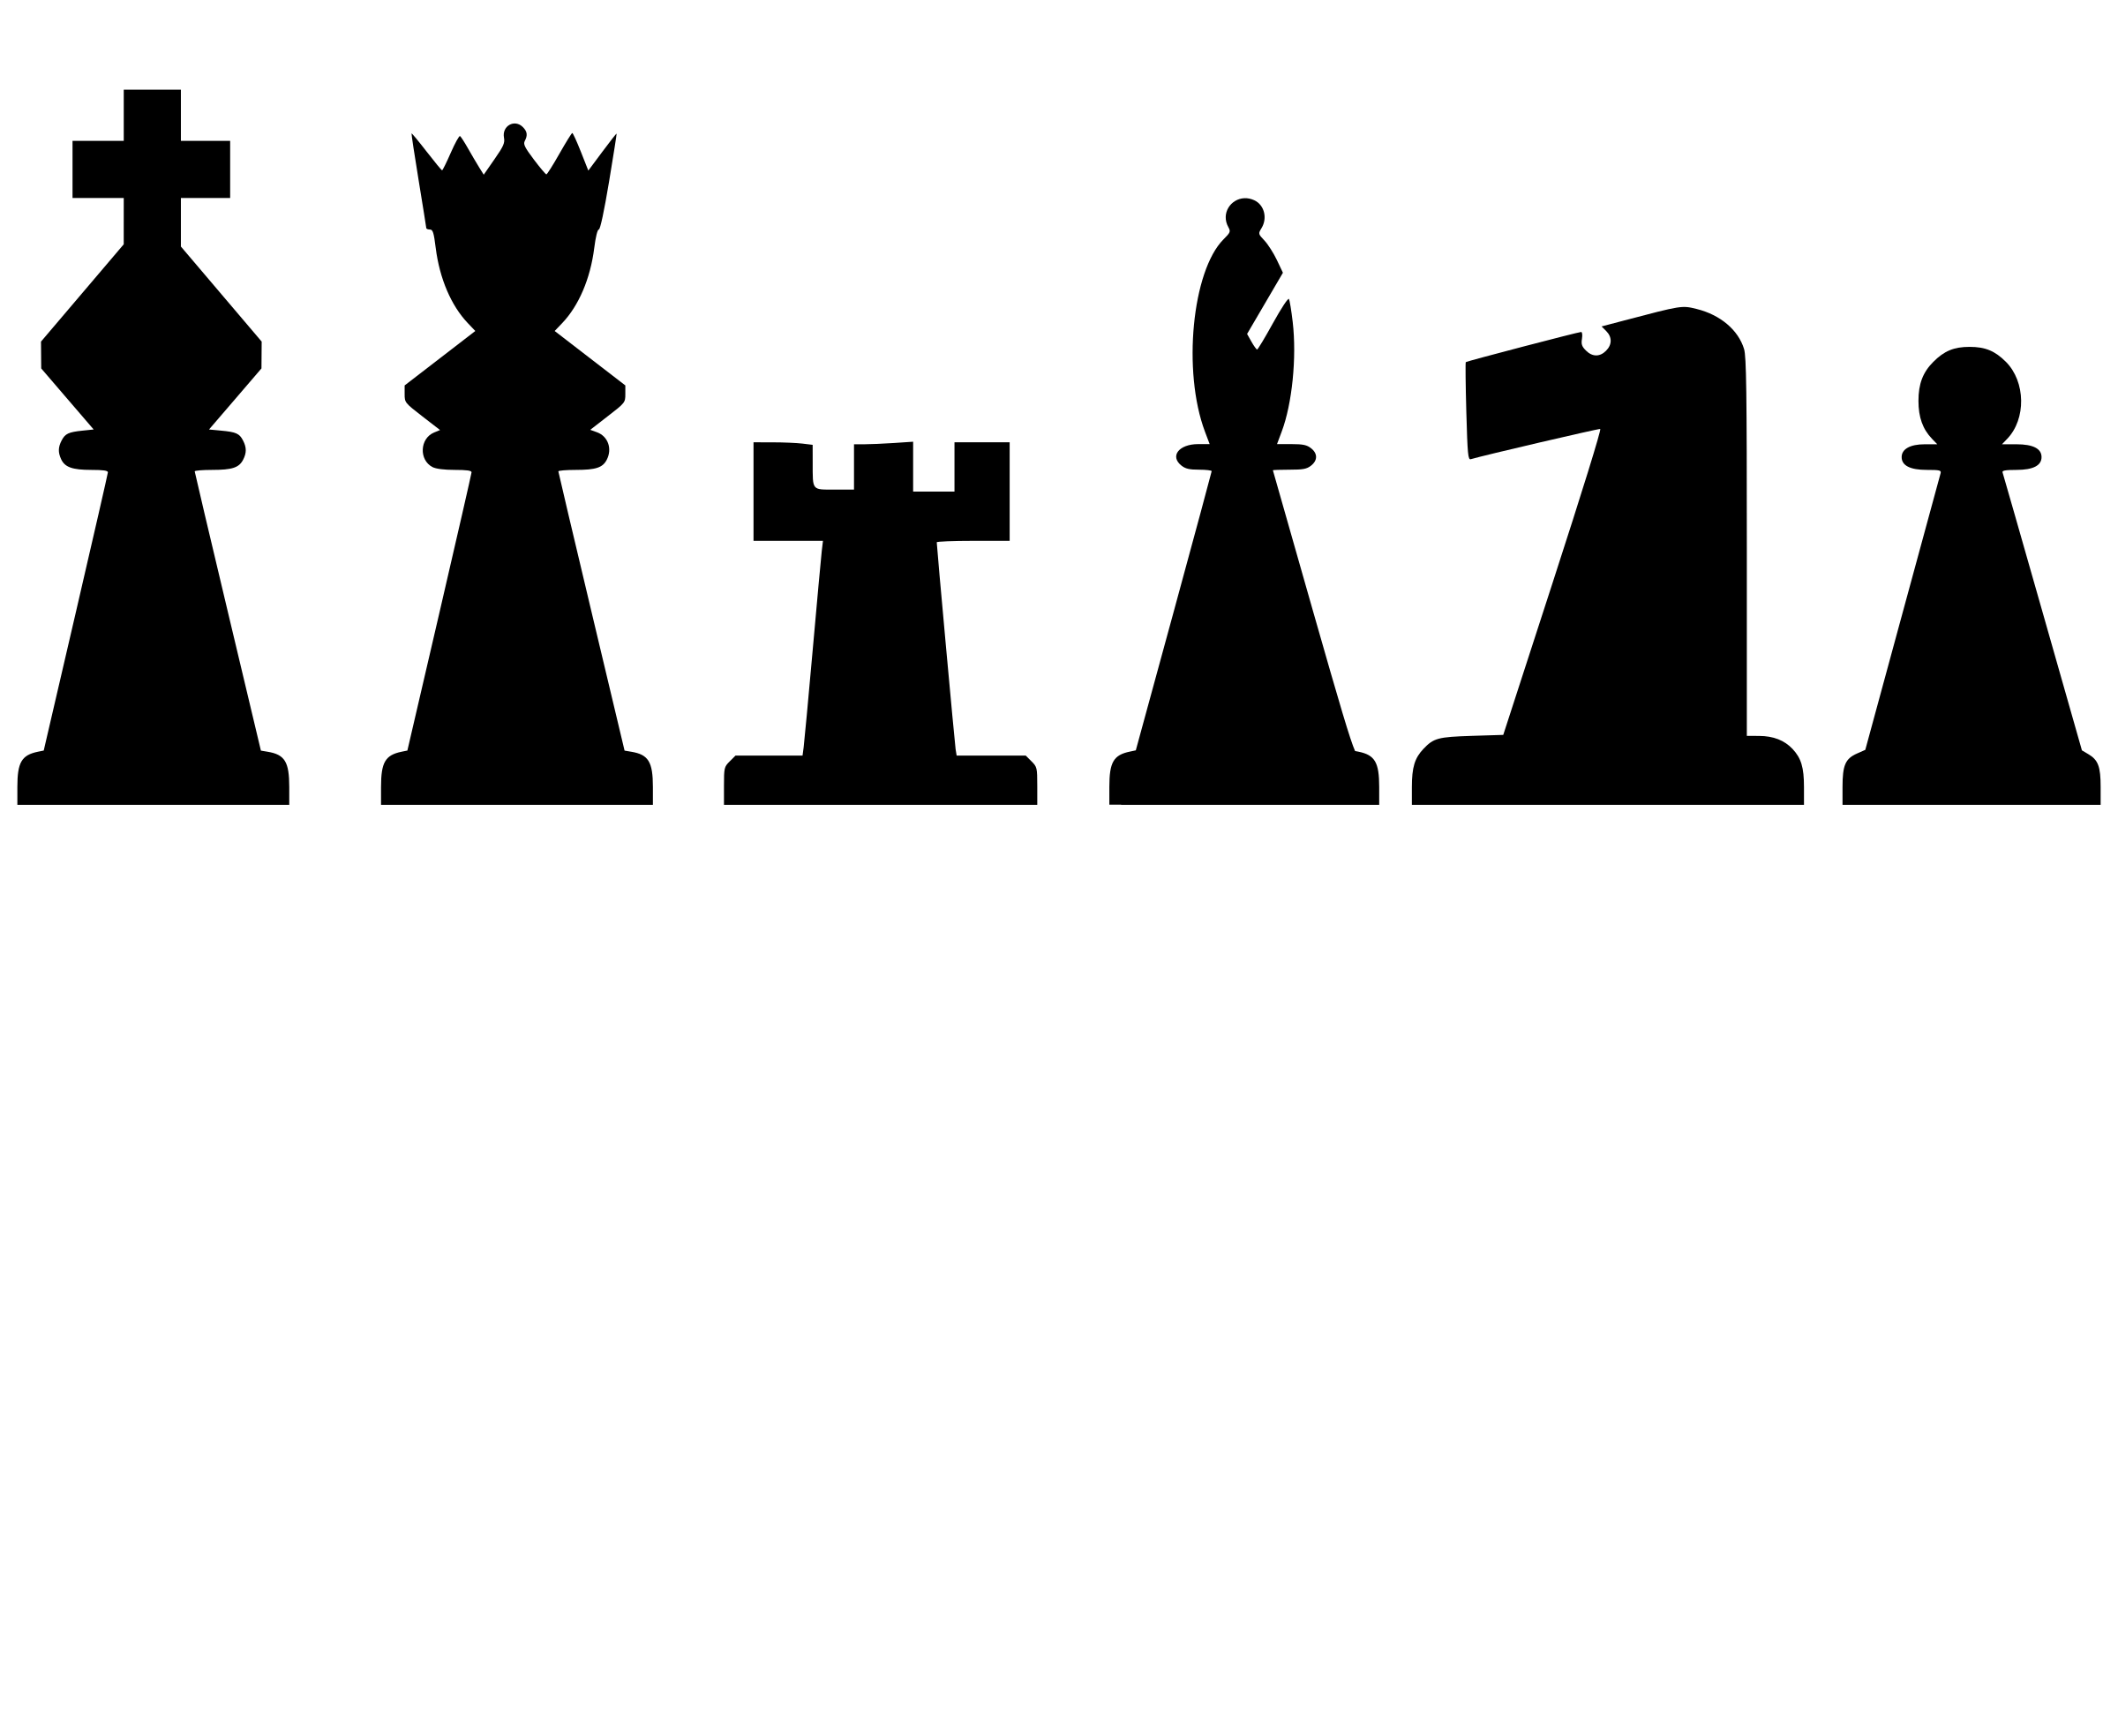 2D Chess set - Pieces 3 by portablejim